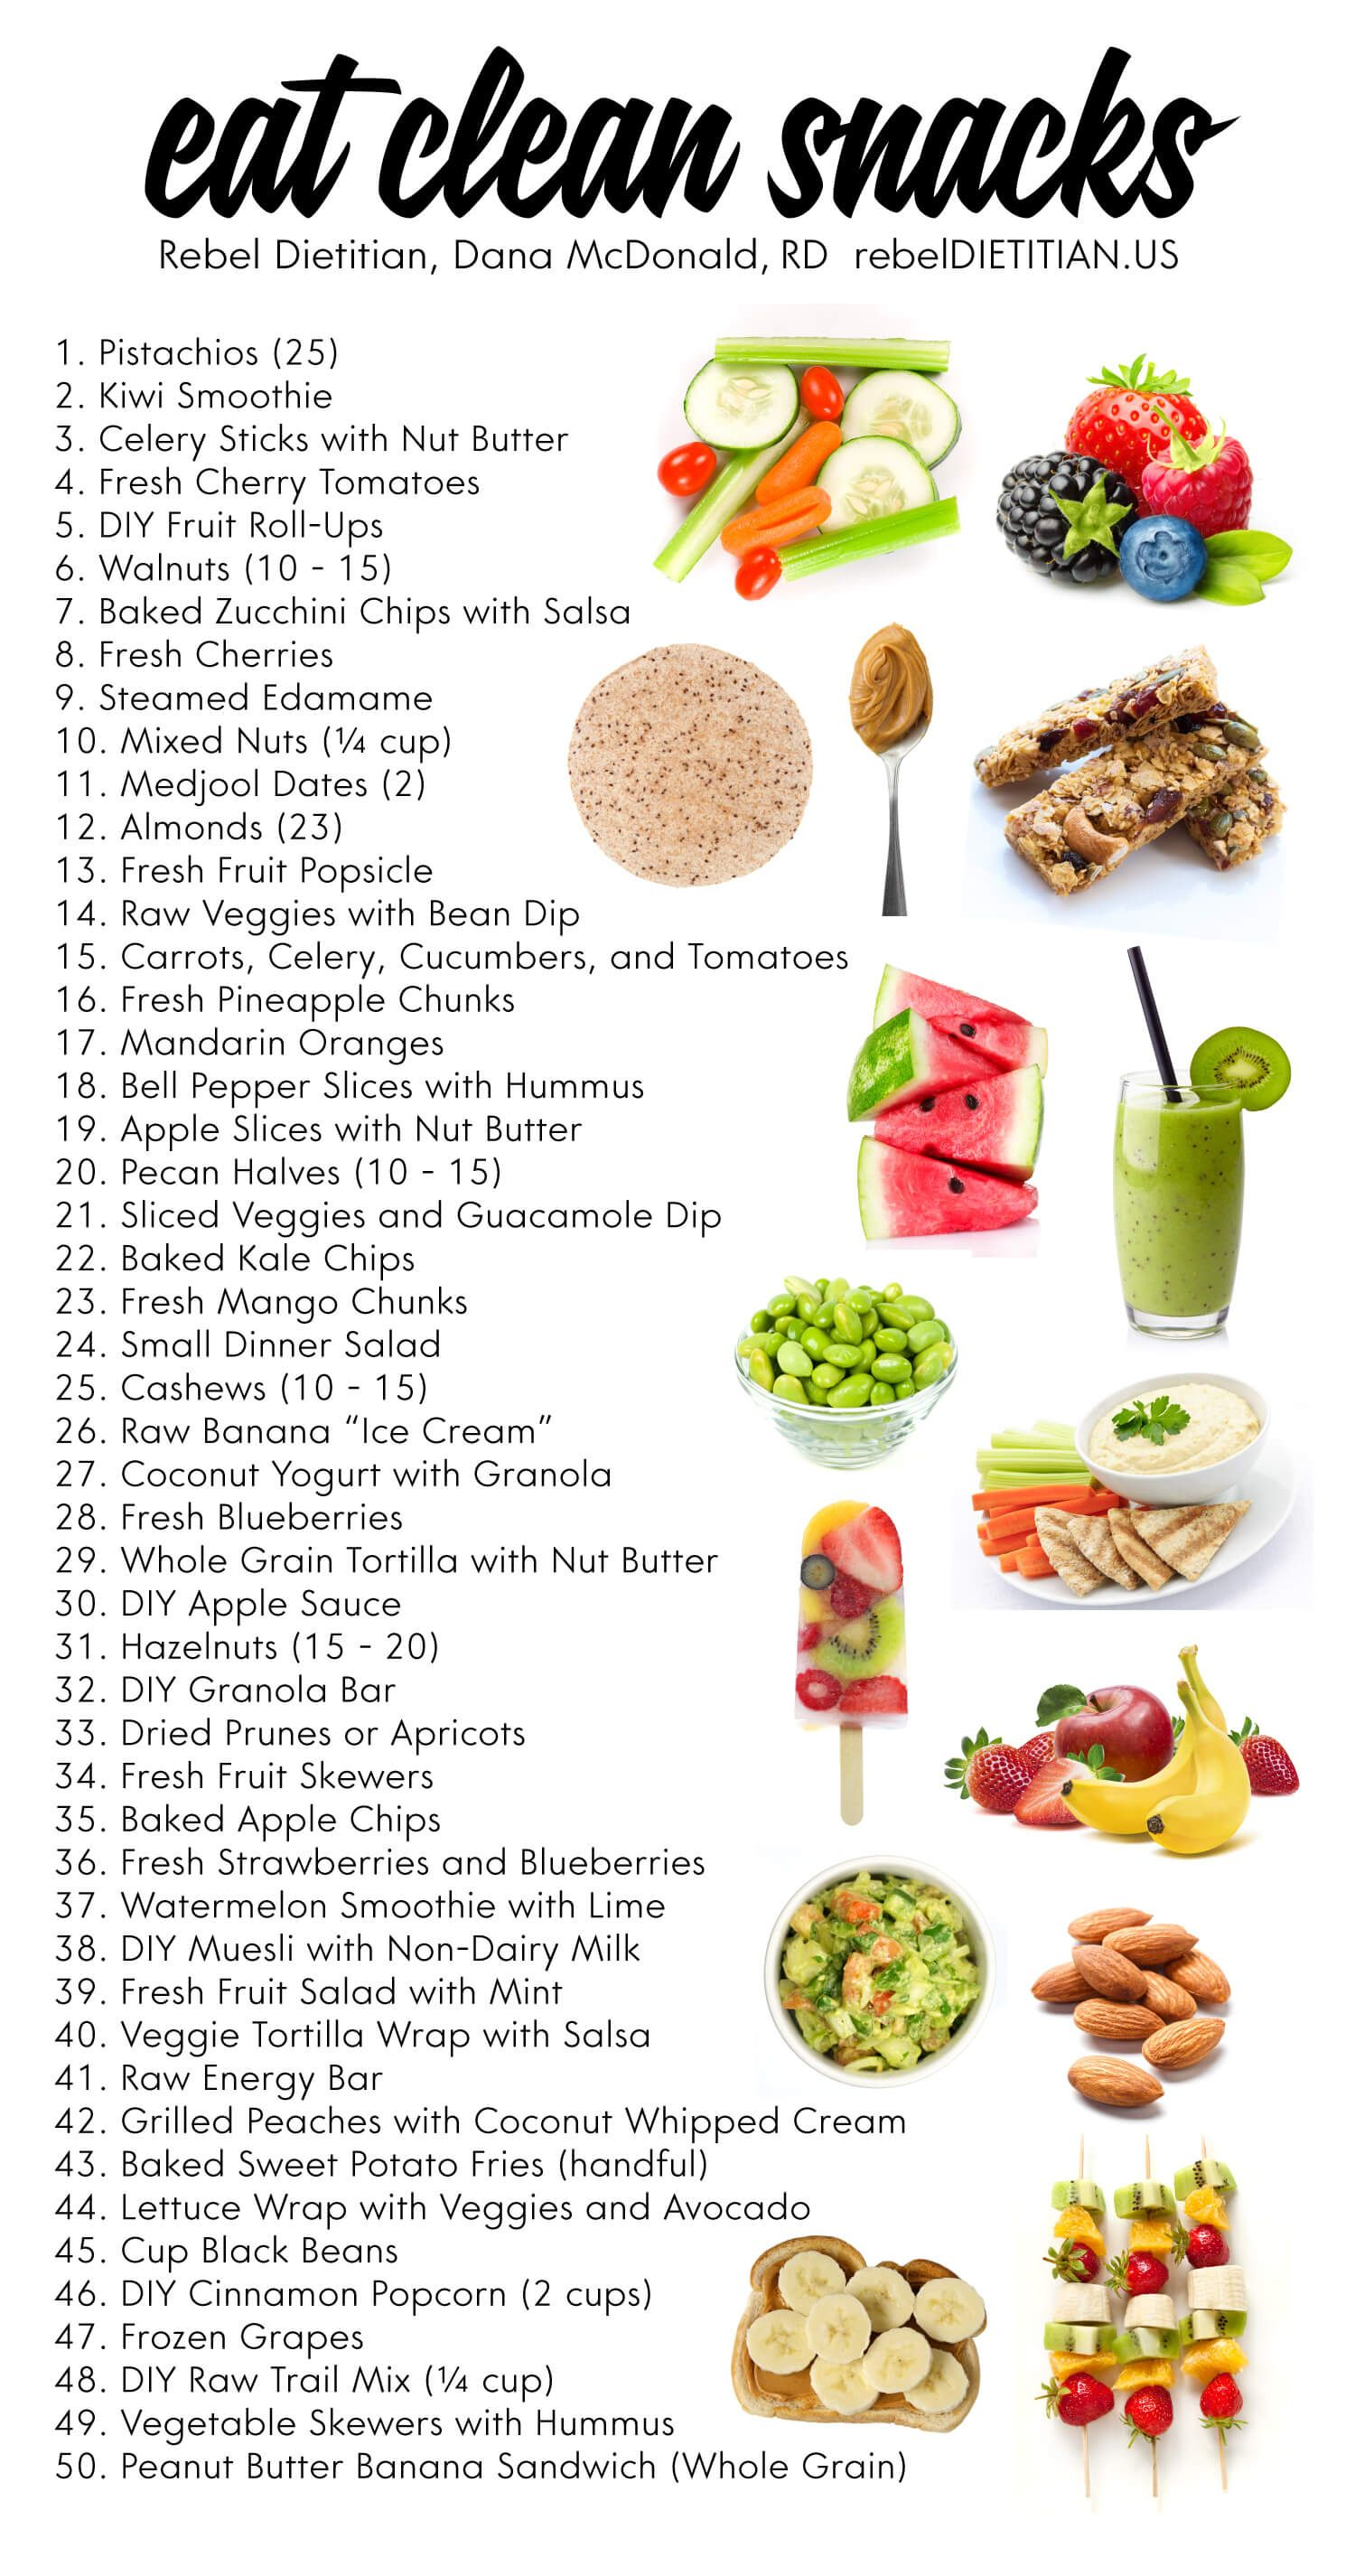 Daily diet for good health - Updated Healthy Snack Ideas Vegan Rebeldietitian Us